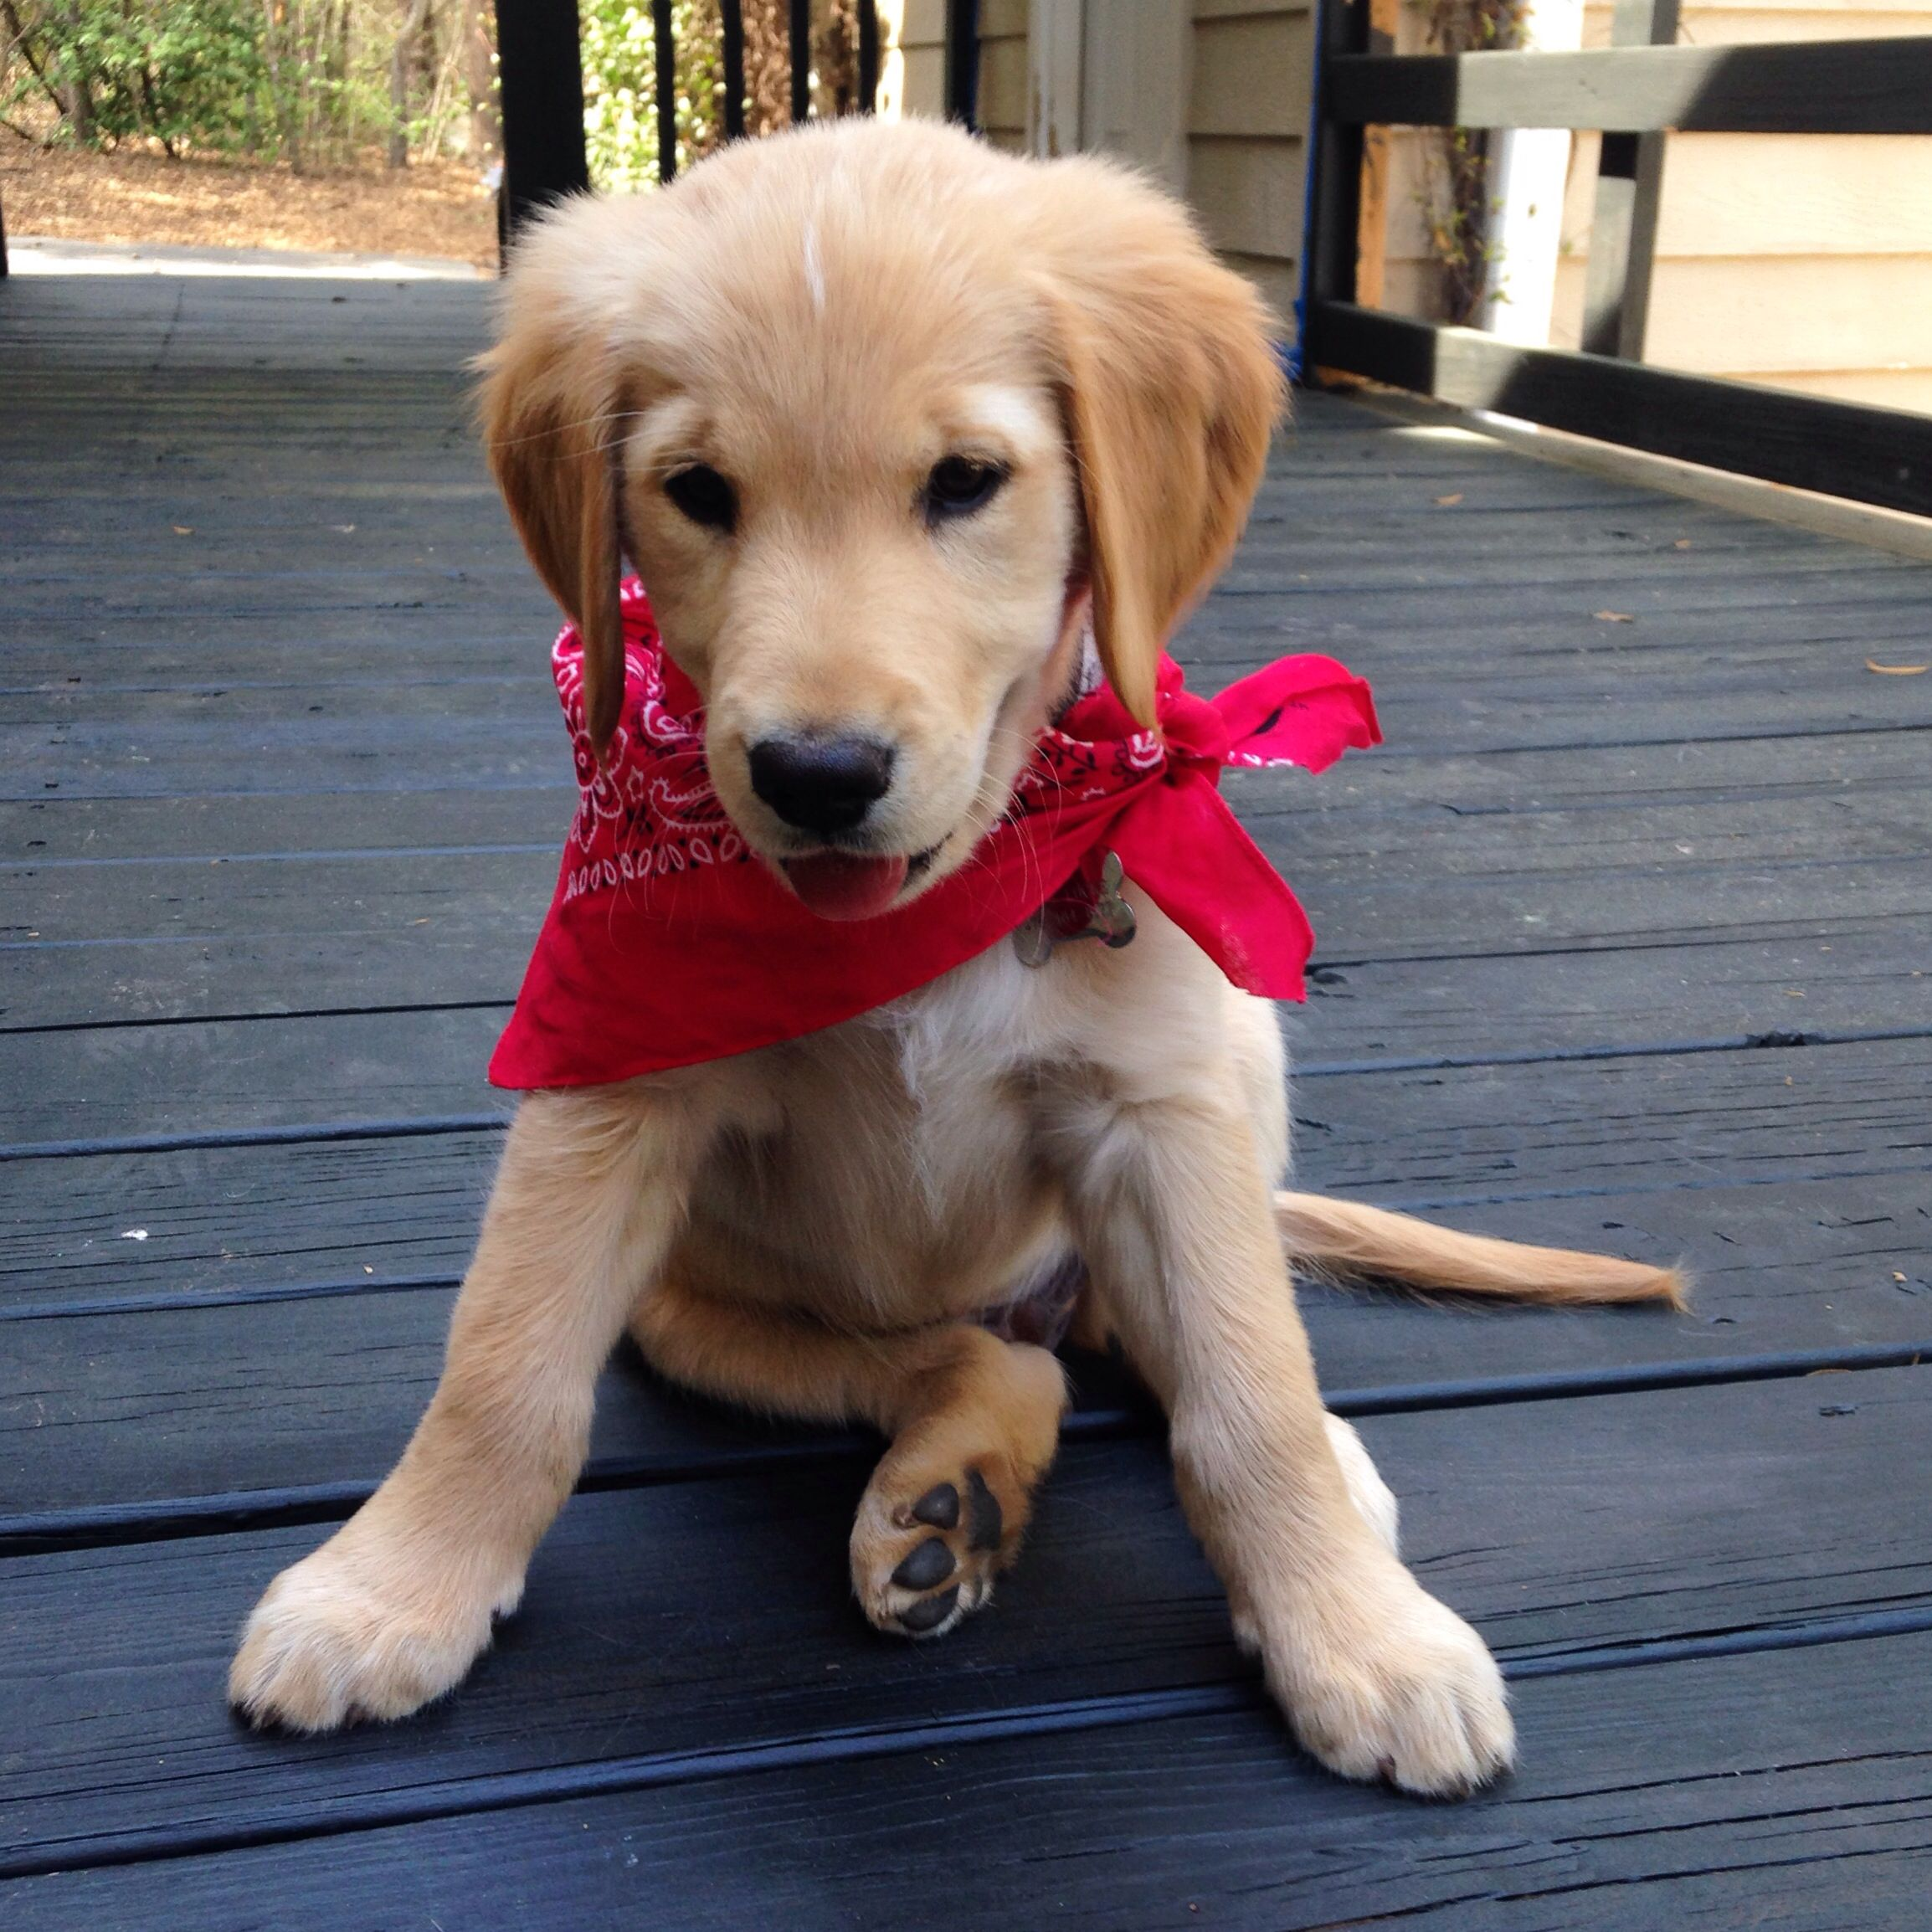 My Spoiled Rotten Golden Retriever Puppy Moose Puppies In Bandanas Make My Heart Melt